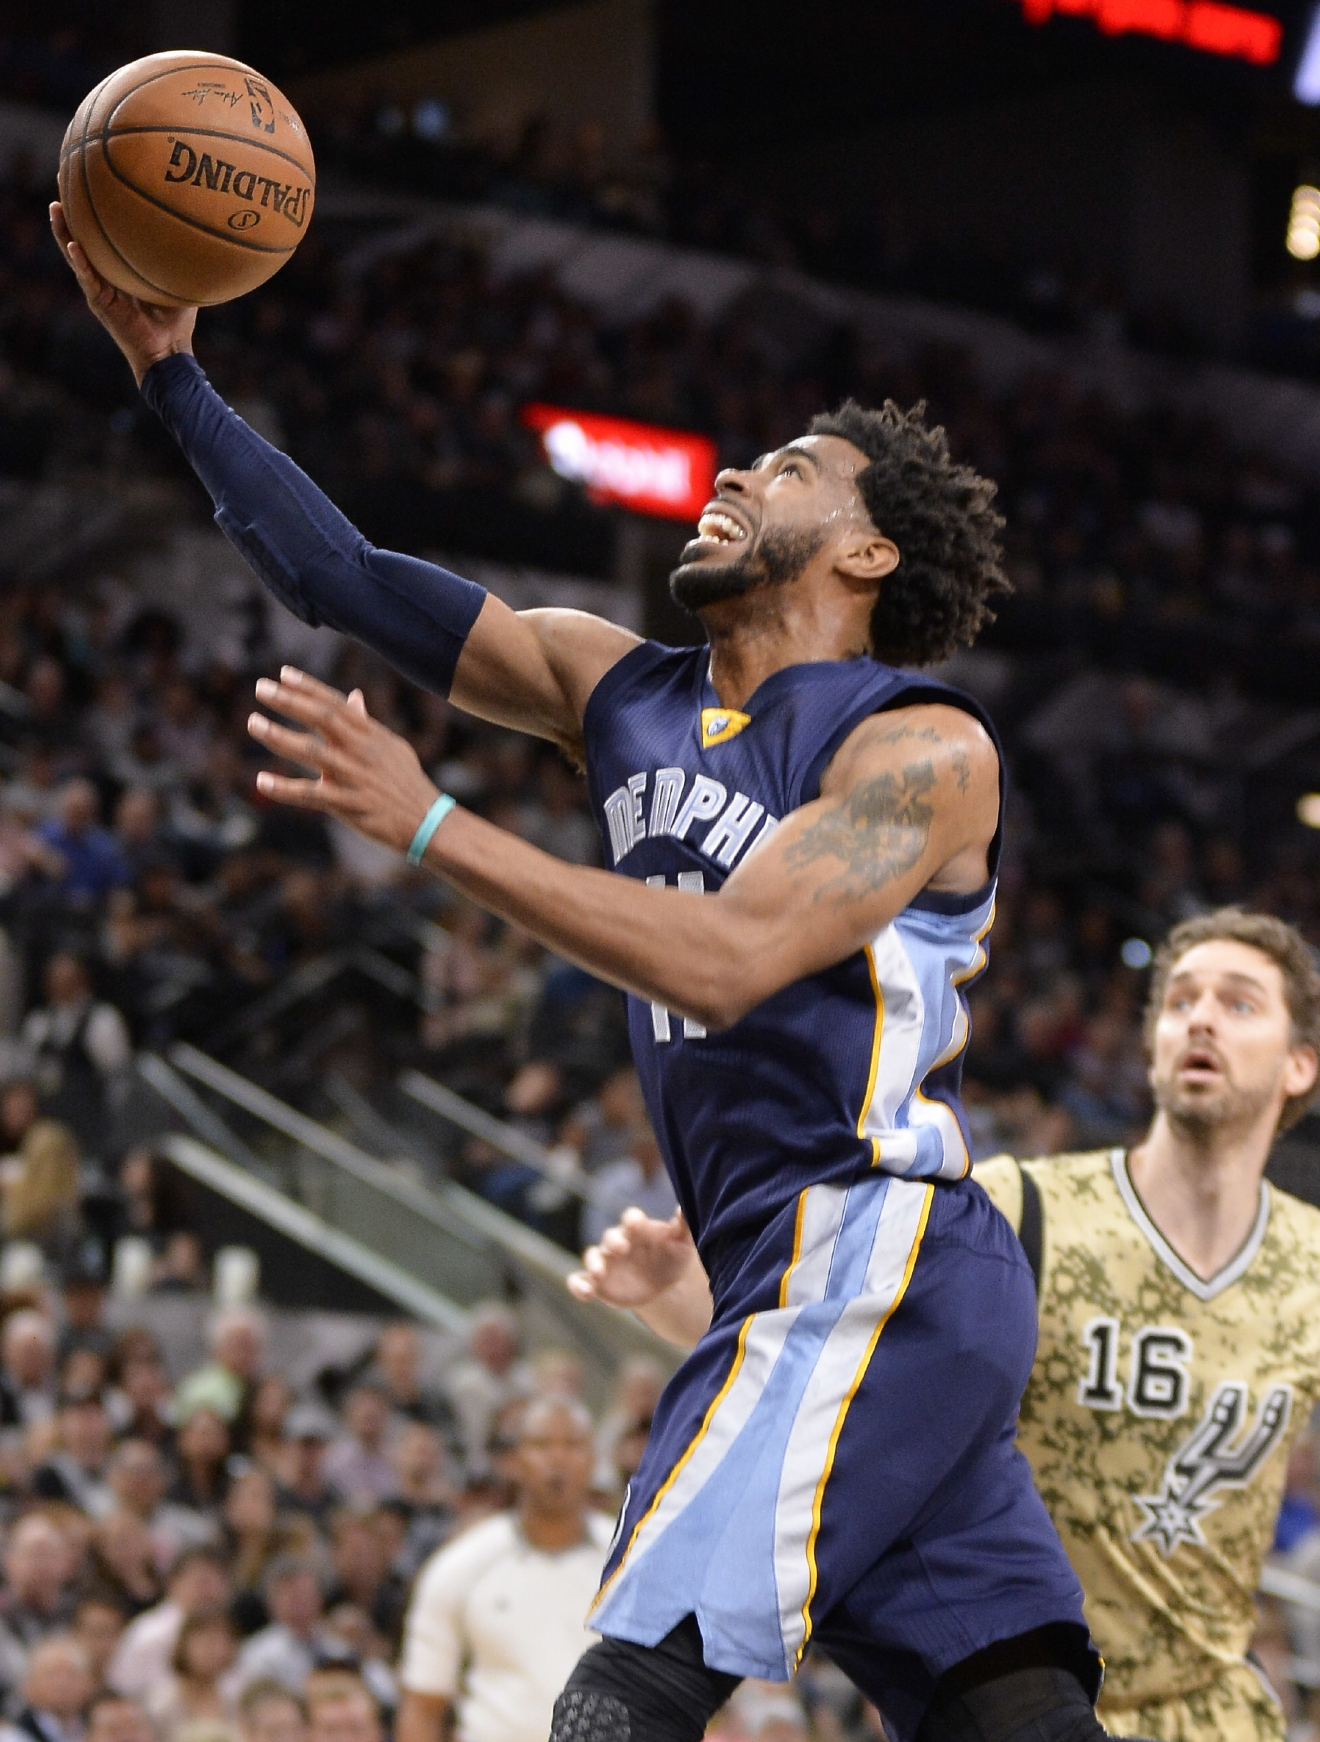 Memphis Grizzlies guard Mike Conley shoots during the first half of the team's NBA basketball game against the San Antonio Spurs, Thursday, March 23, 2017, in San Antonio. (AP Photo/Darren Abate)